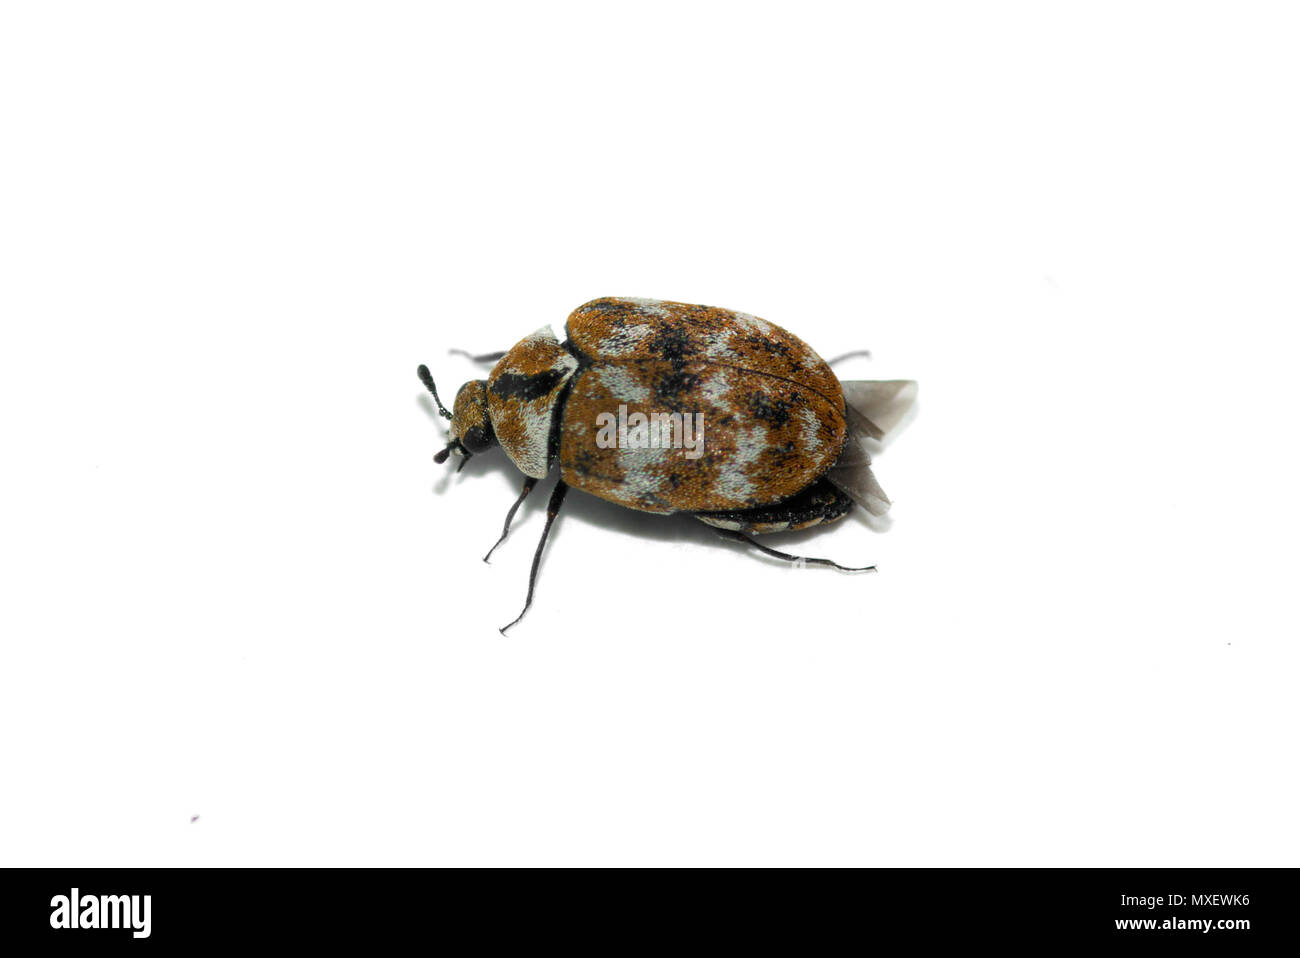 Lateral perspective of a tiny Carpet beetle (Anthrenus verbasci) adult insect isolated over a white background. - Stock Image